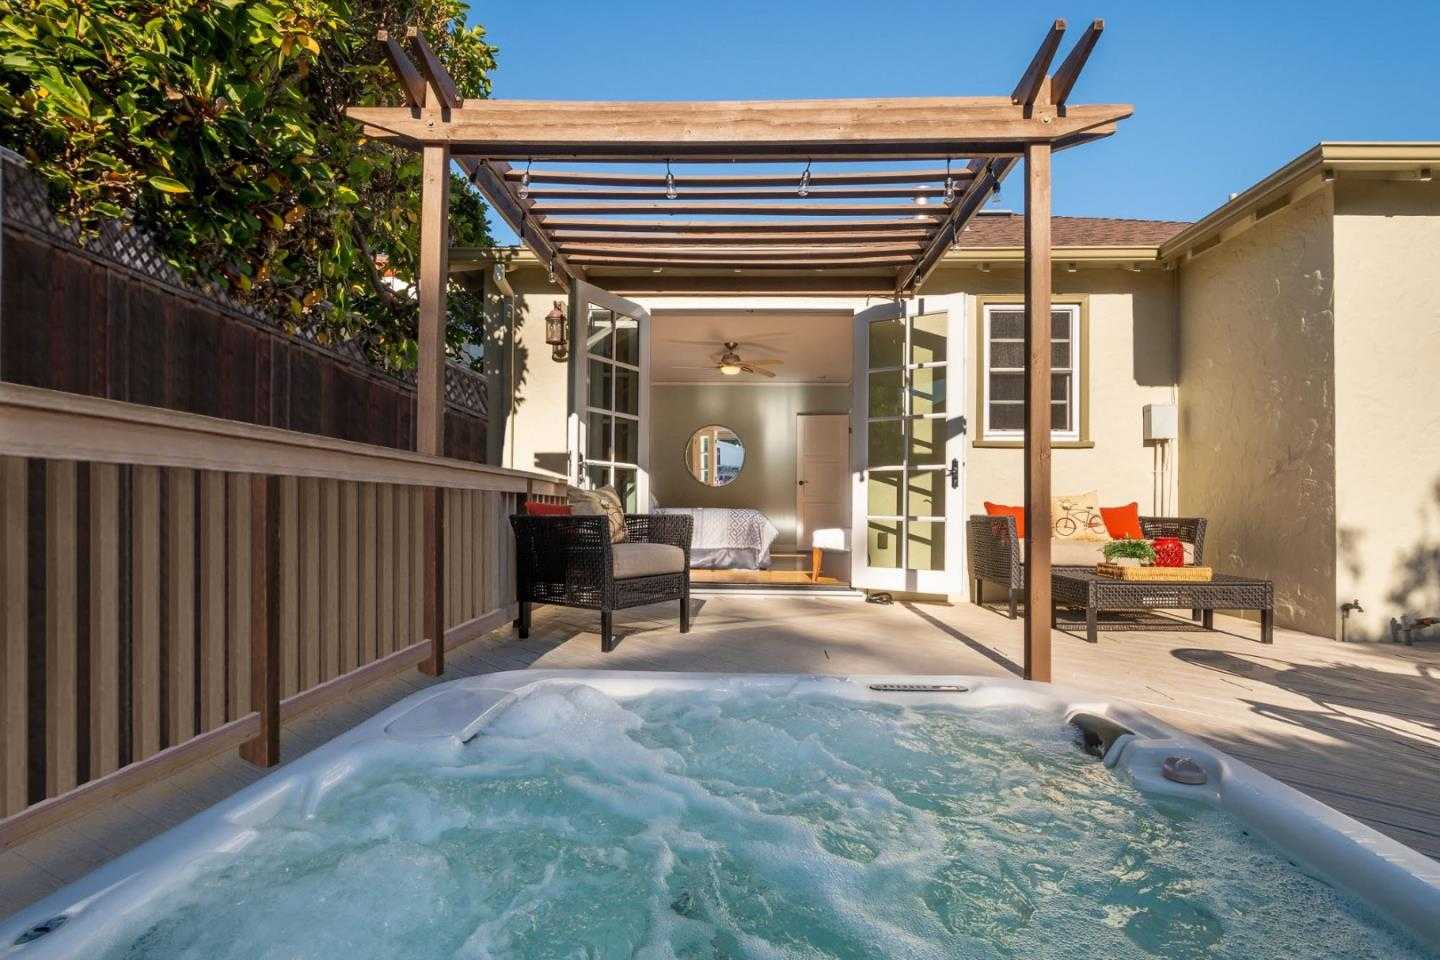 $1,500,000 - 3Br/1Ba -  for Sale in San Mateo